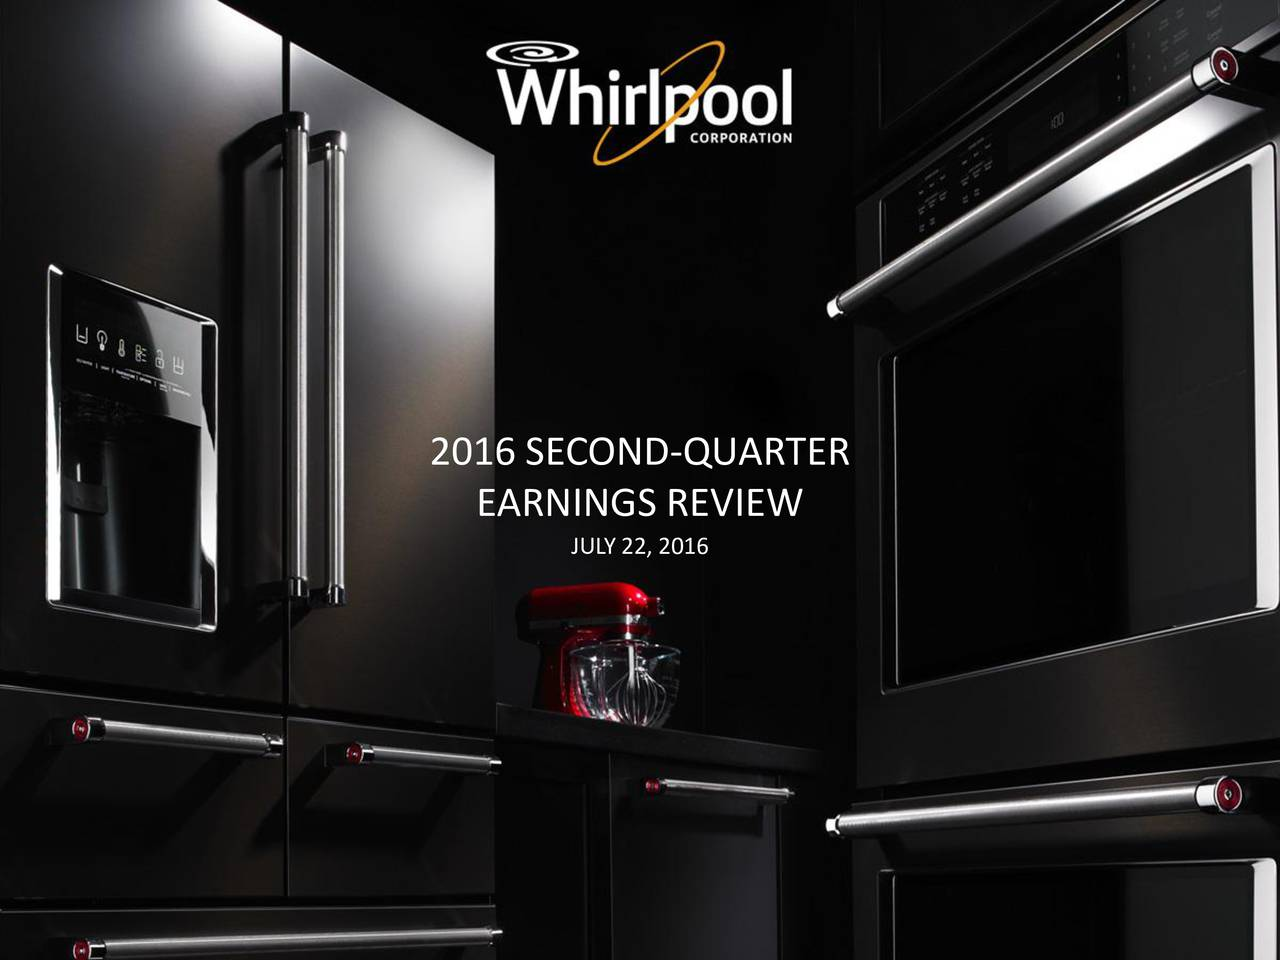 EARNINGS REVIEW JULY 22, 2016 0SECOND-QUARTEREARNINGS PRESENTATION 2016   WHIRLPOOL CORPORATION